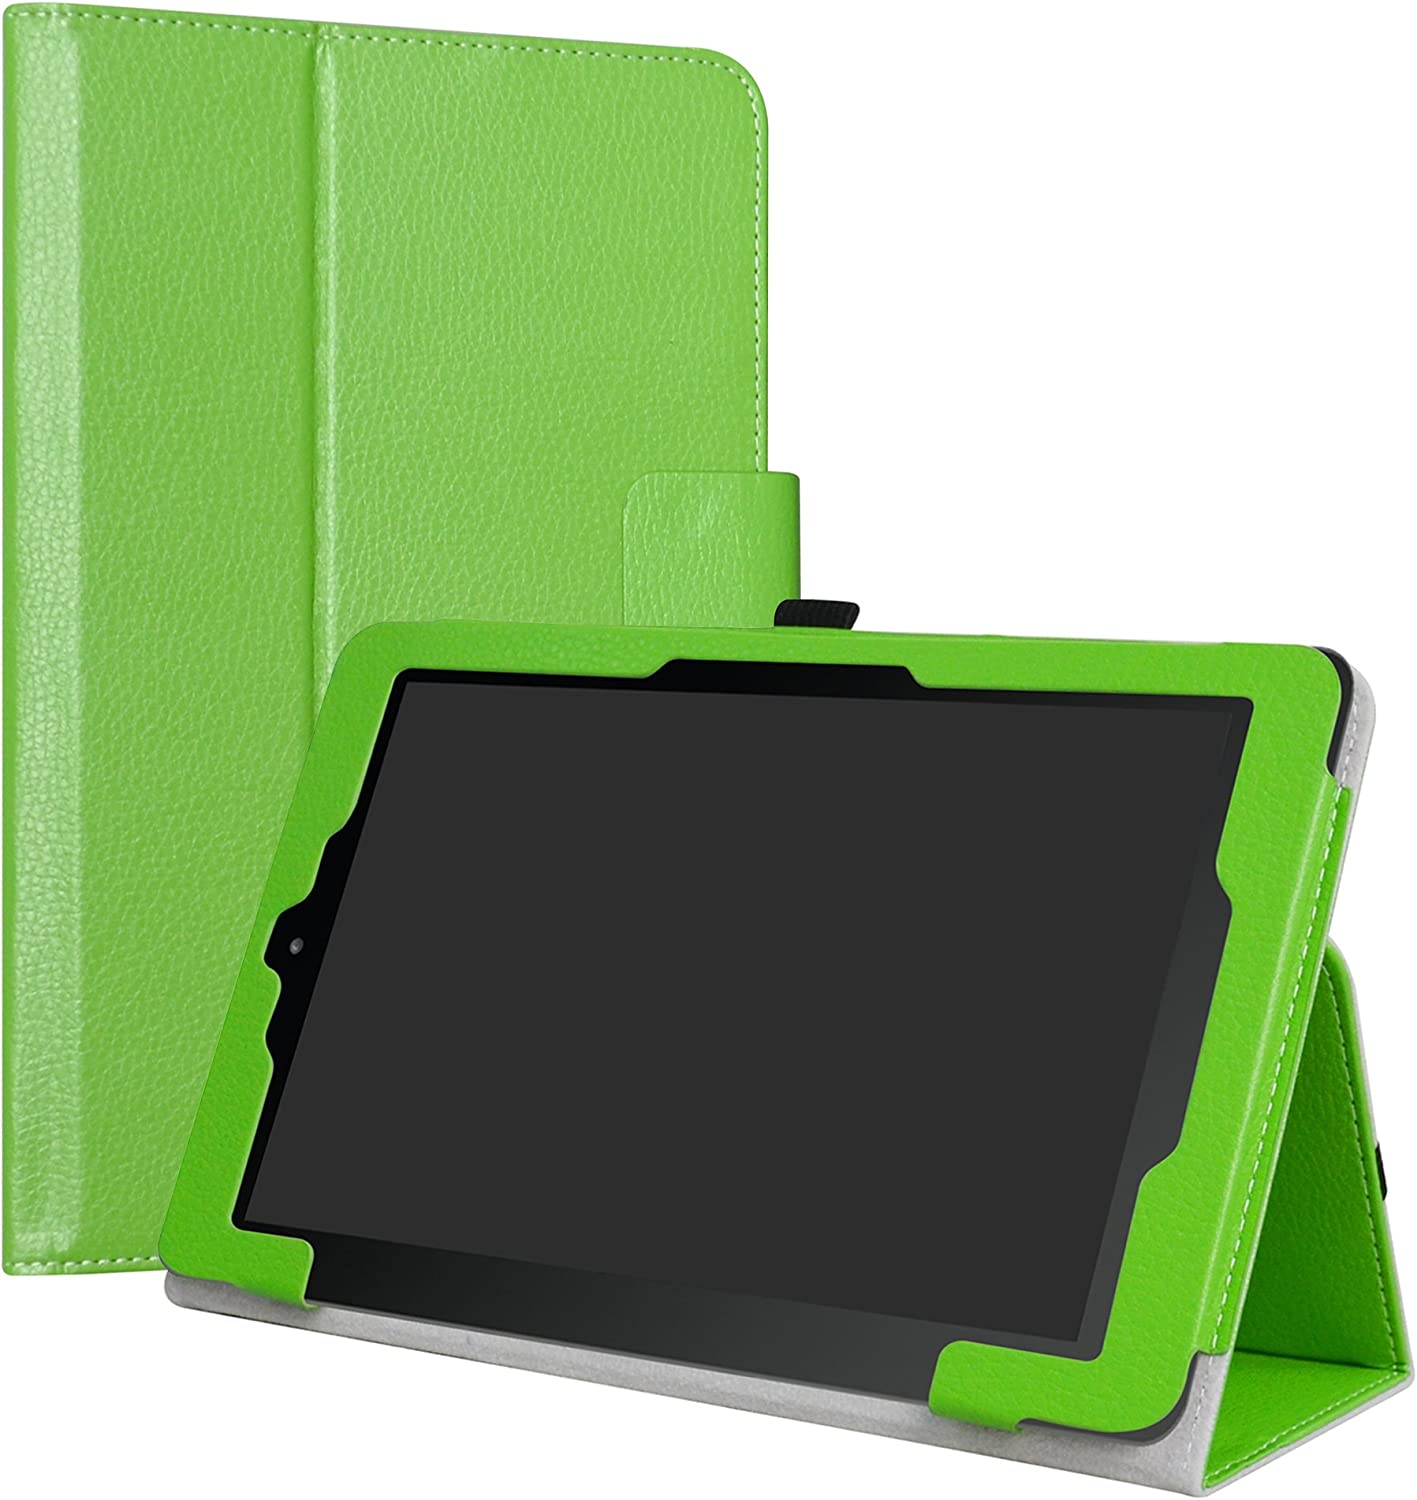 """RCA 10 Viking/II Pro/Cambio W101 V2 Case,LiuShan PU Leather Slim Folding Stand Cover for 10.1"""" RCA 10 Viking Pro/Viking II Pro/Cambio W101 V2 Tablet,Green"""